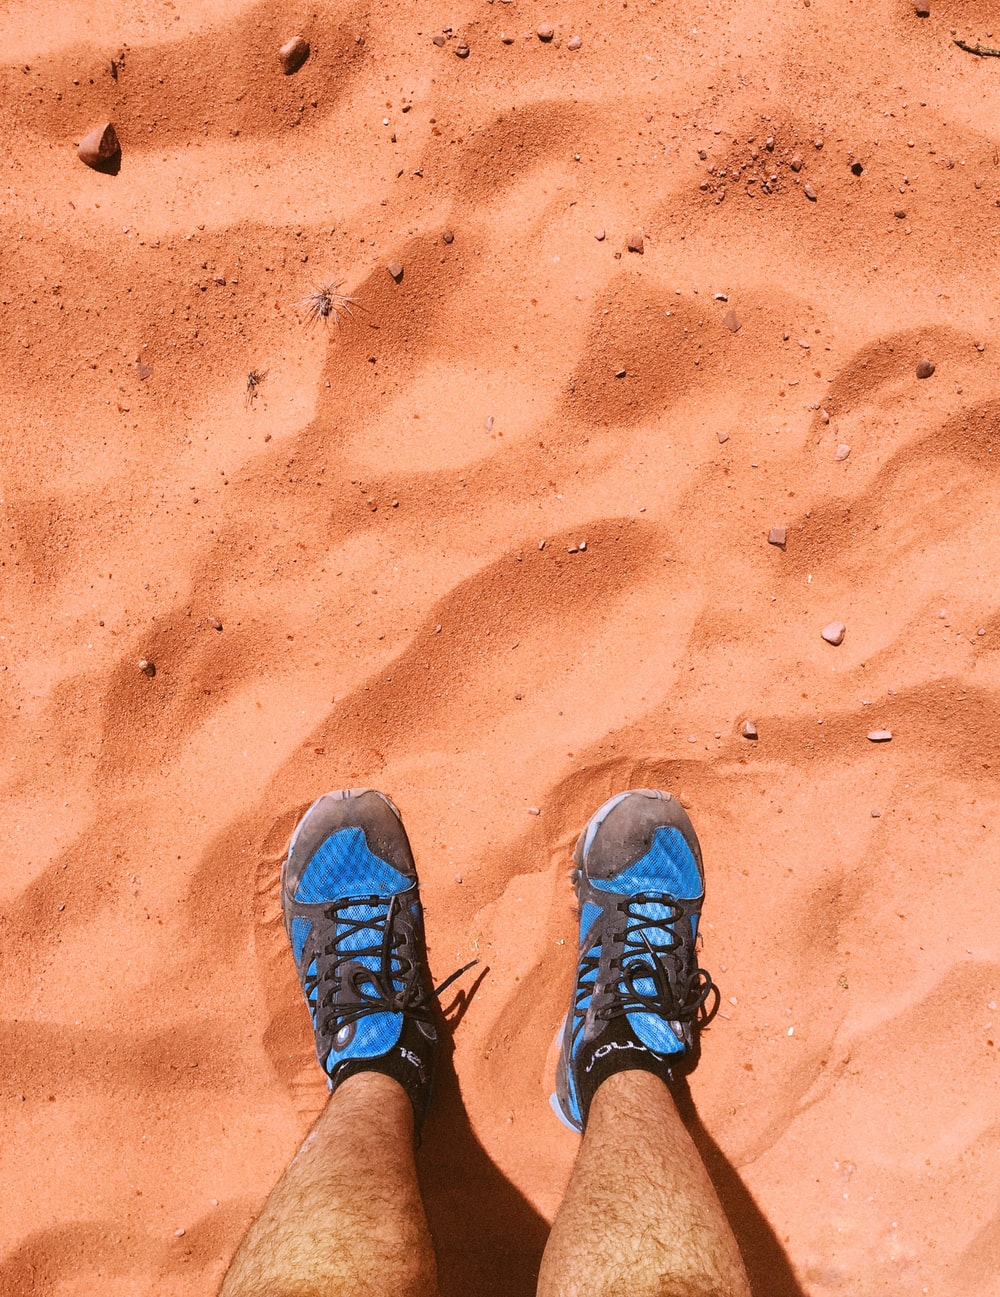 person wearing blue hiking shoes